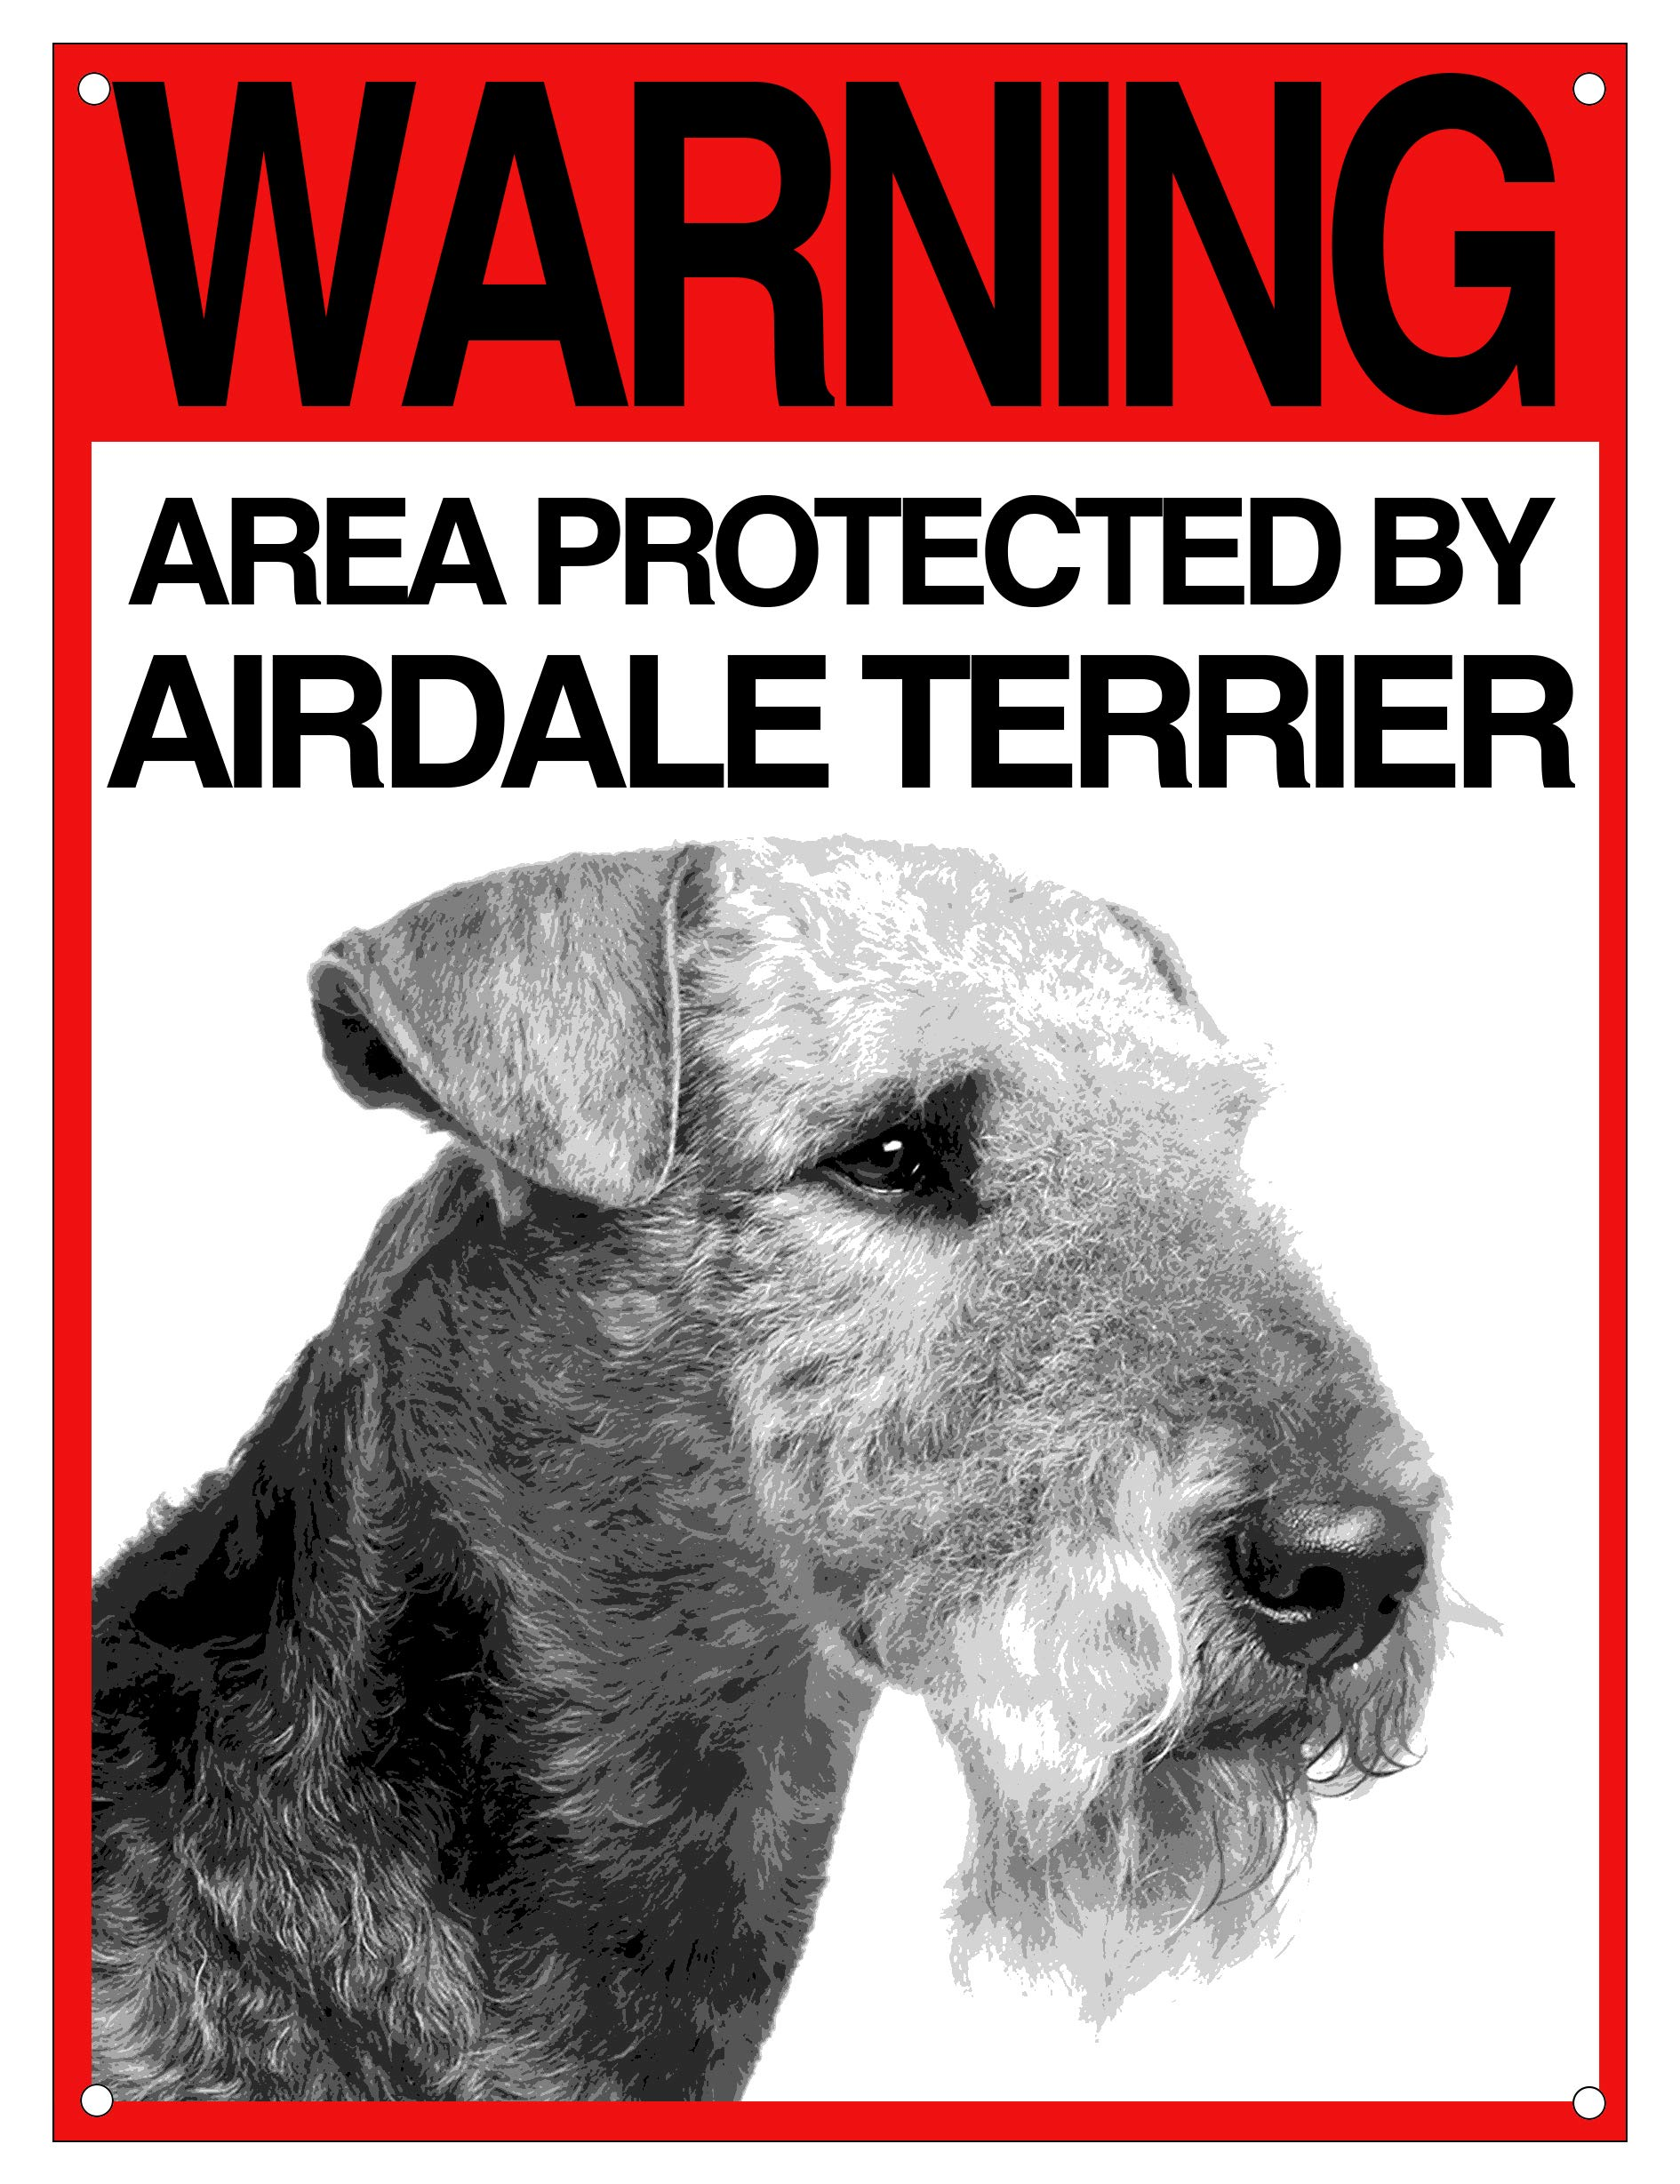 Lovelytiles AIRDALE Terrier Warning Area Protected By Dog Sign